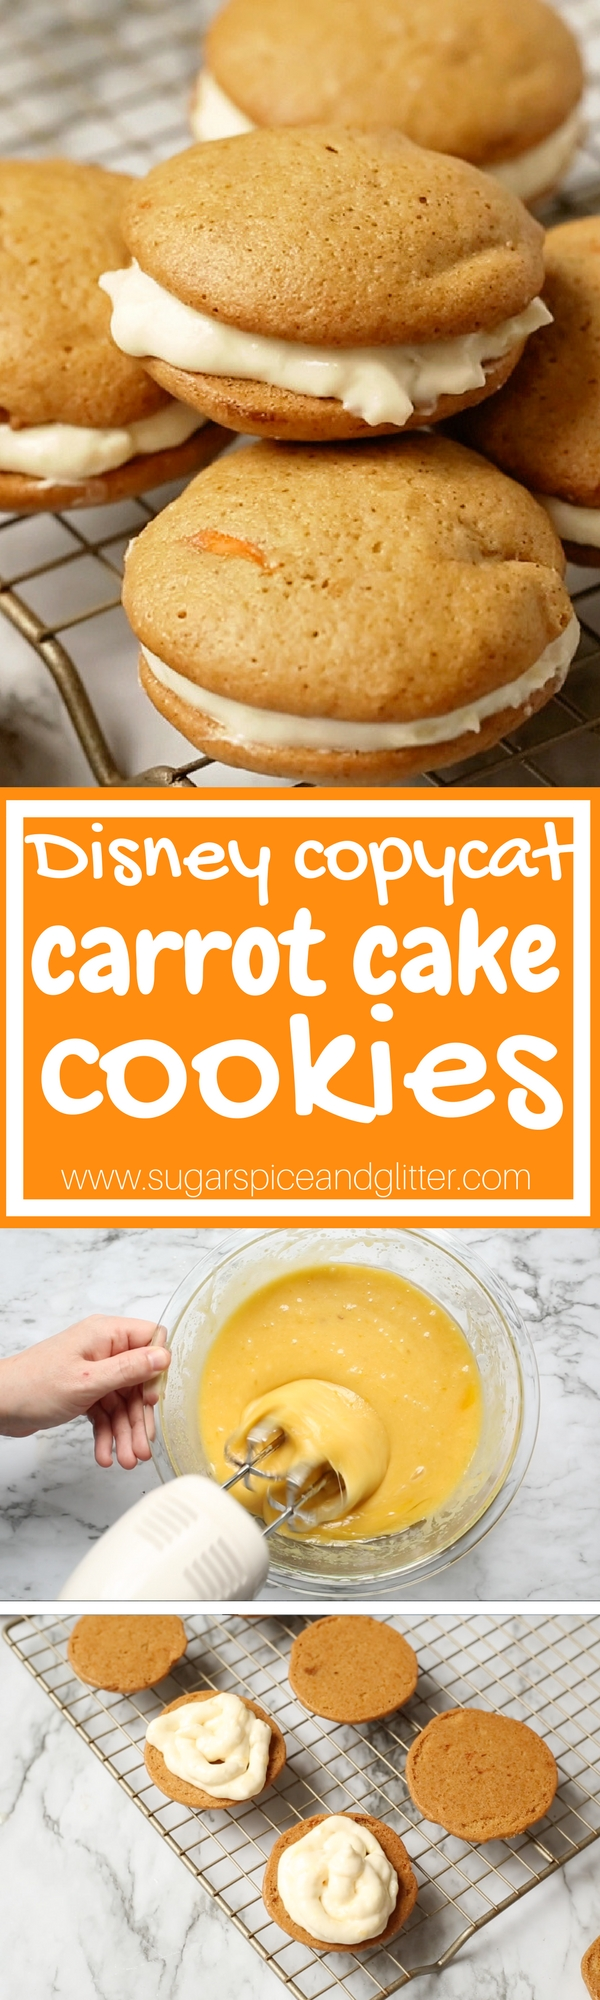 The perfect recipe for Carrot Cake Cookies, a fun Easter dessert or Disney movie night treat - after all, they are inspired by the Disneyworld recipe!